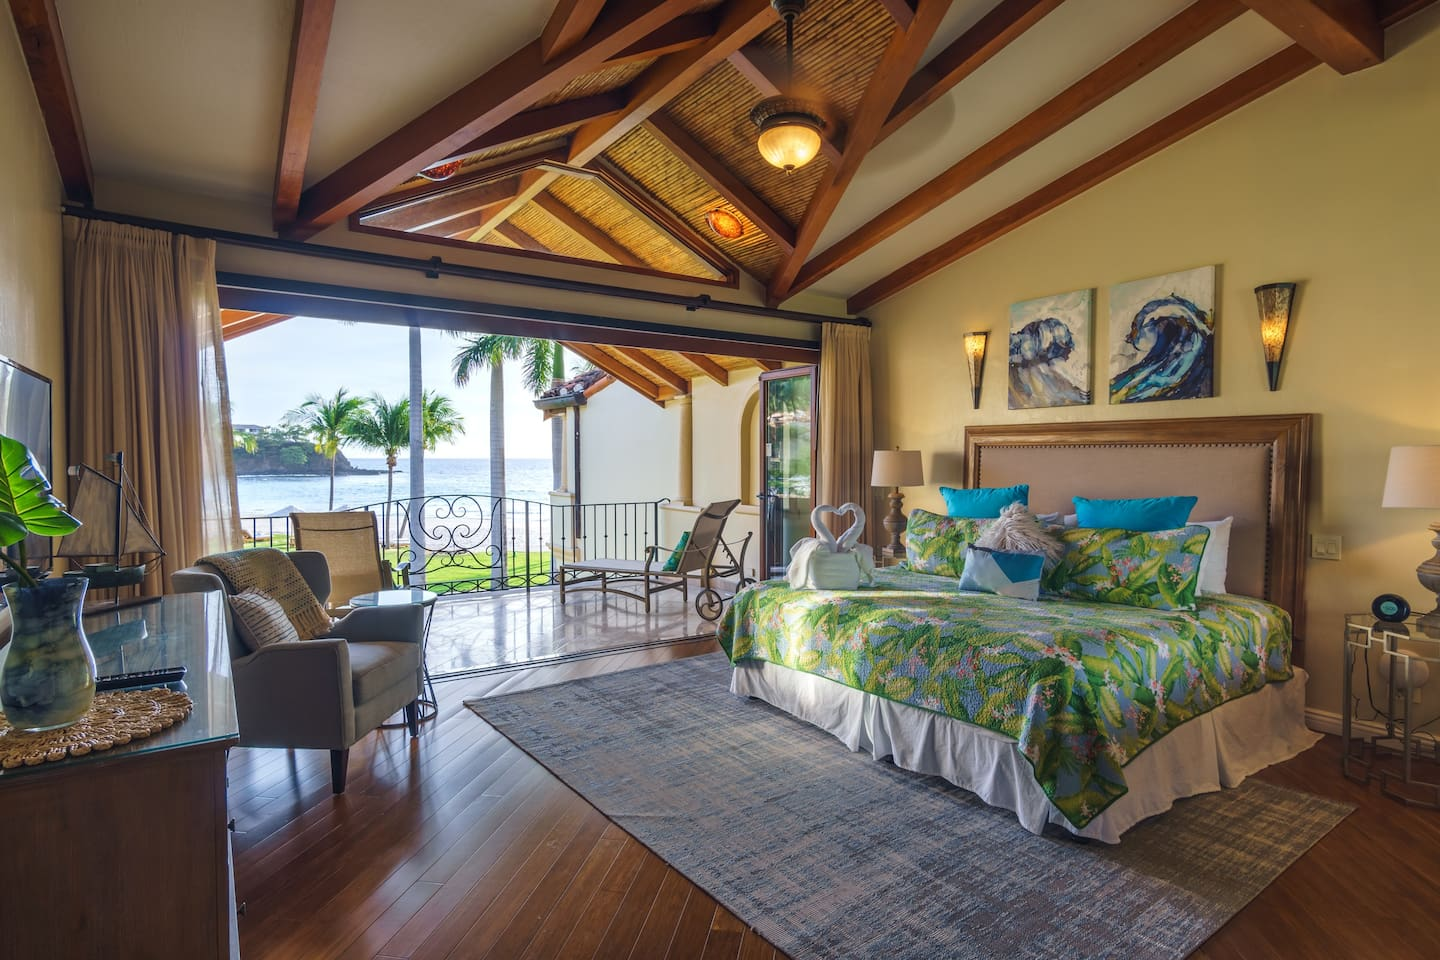 The Master Suite is spectacular with the same wall-to-wall doors and ocean view as the ground floor. Our guests repeatedly say they've never slept so well as at Villa 29! And yes, it is a massive master bedroom. Luxury awaits!